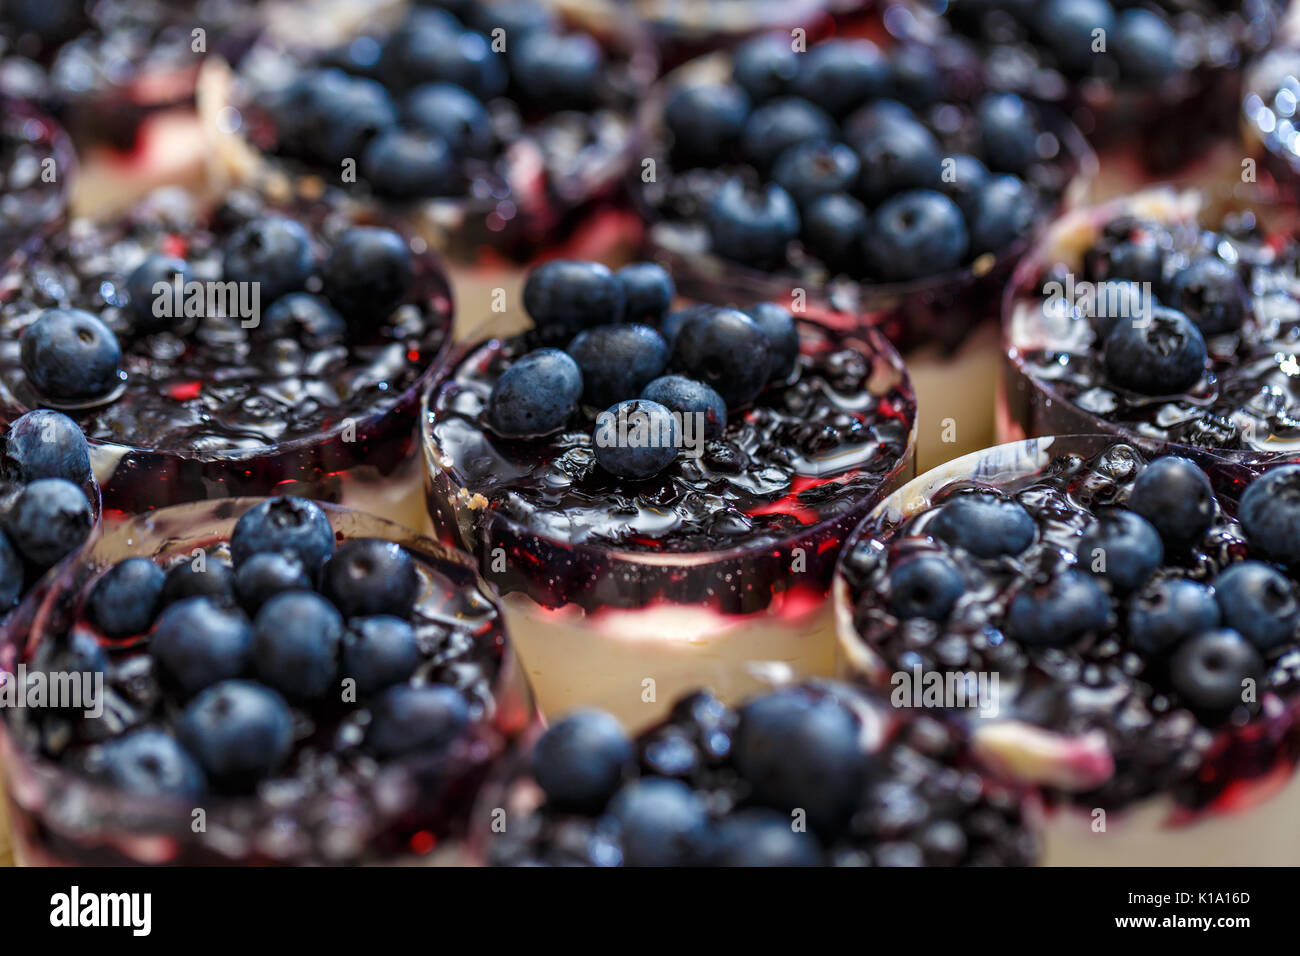 Mini-cheesecakes decorated with blueberries waiting to serve - Stock Image